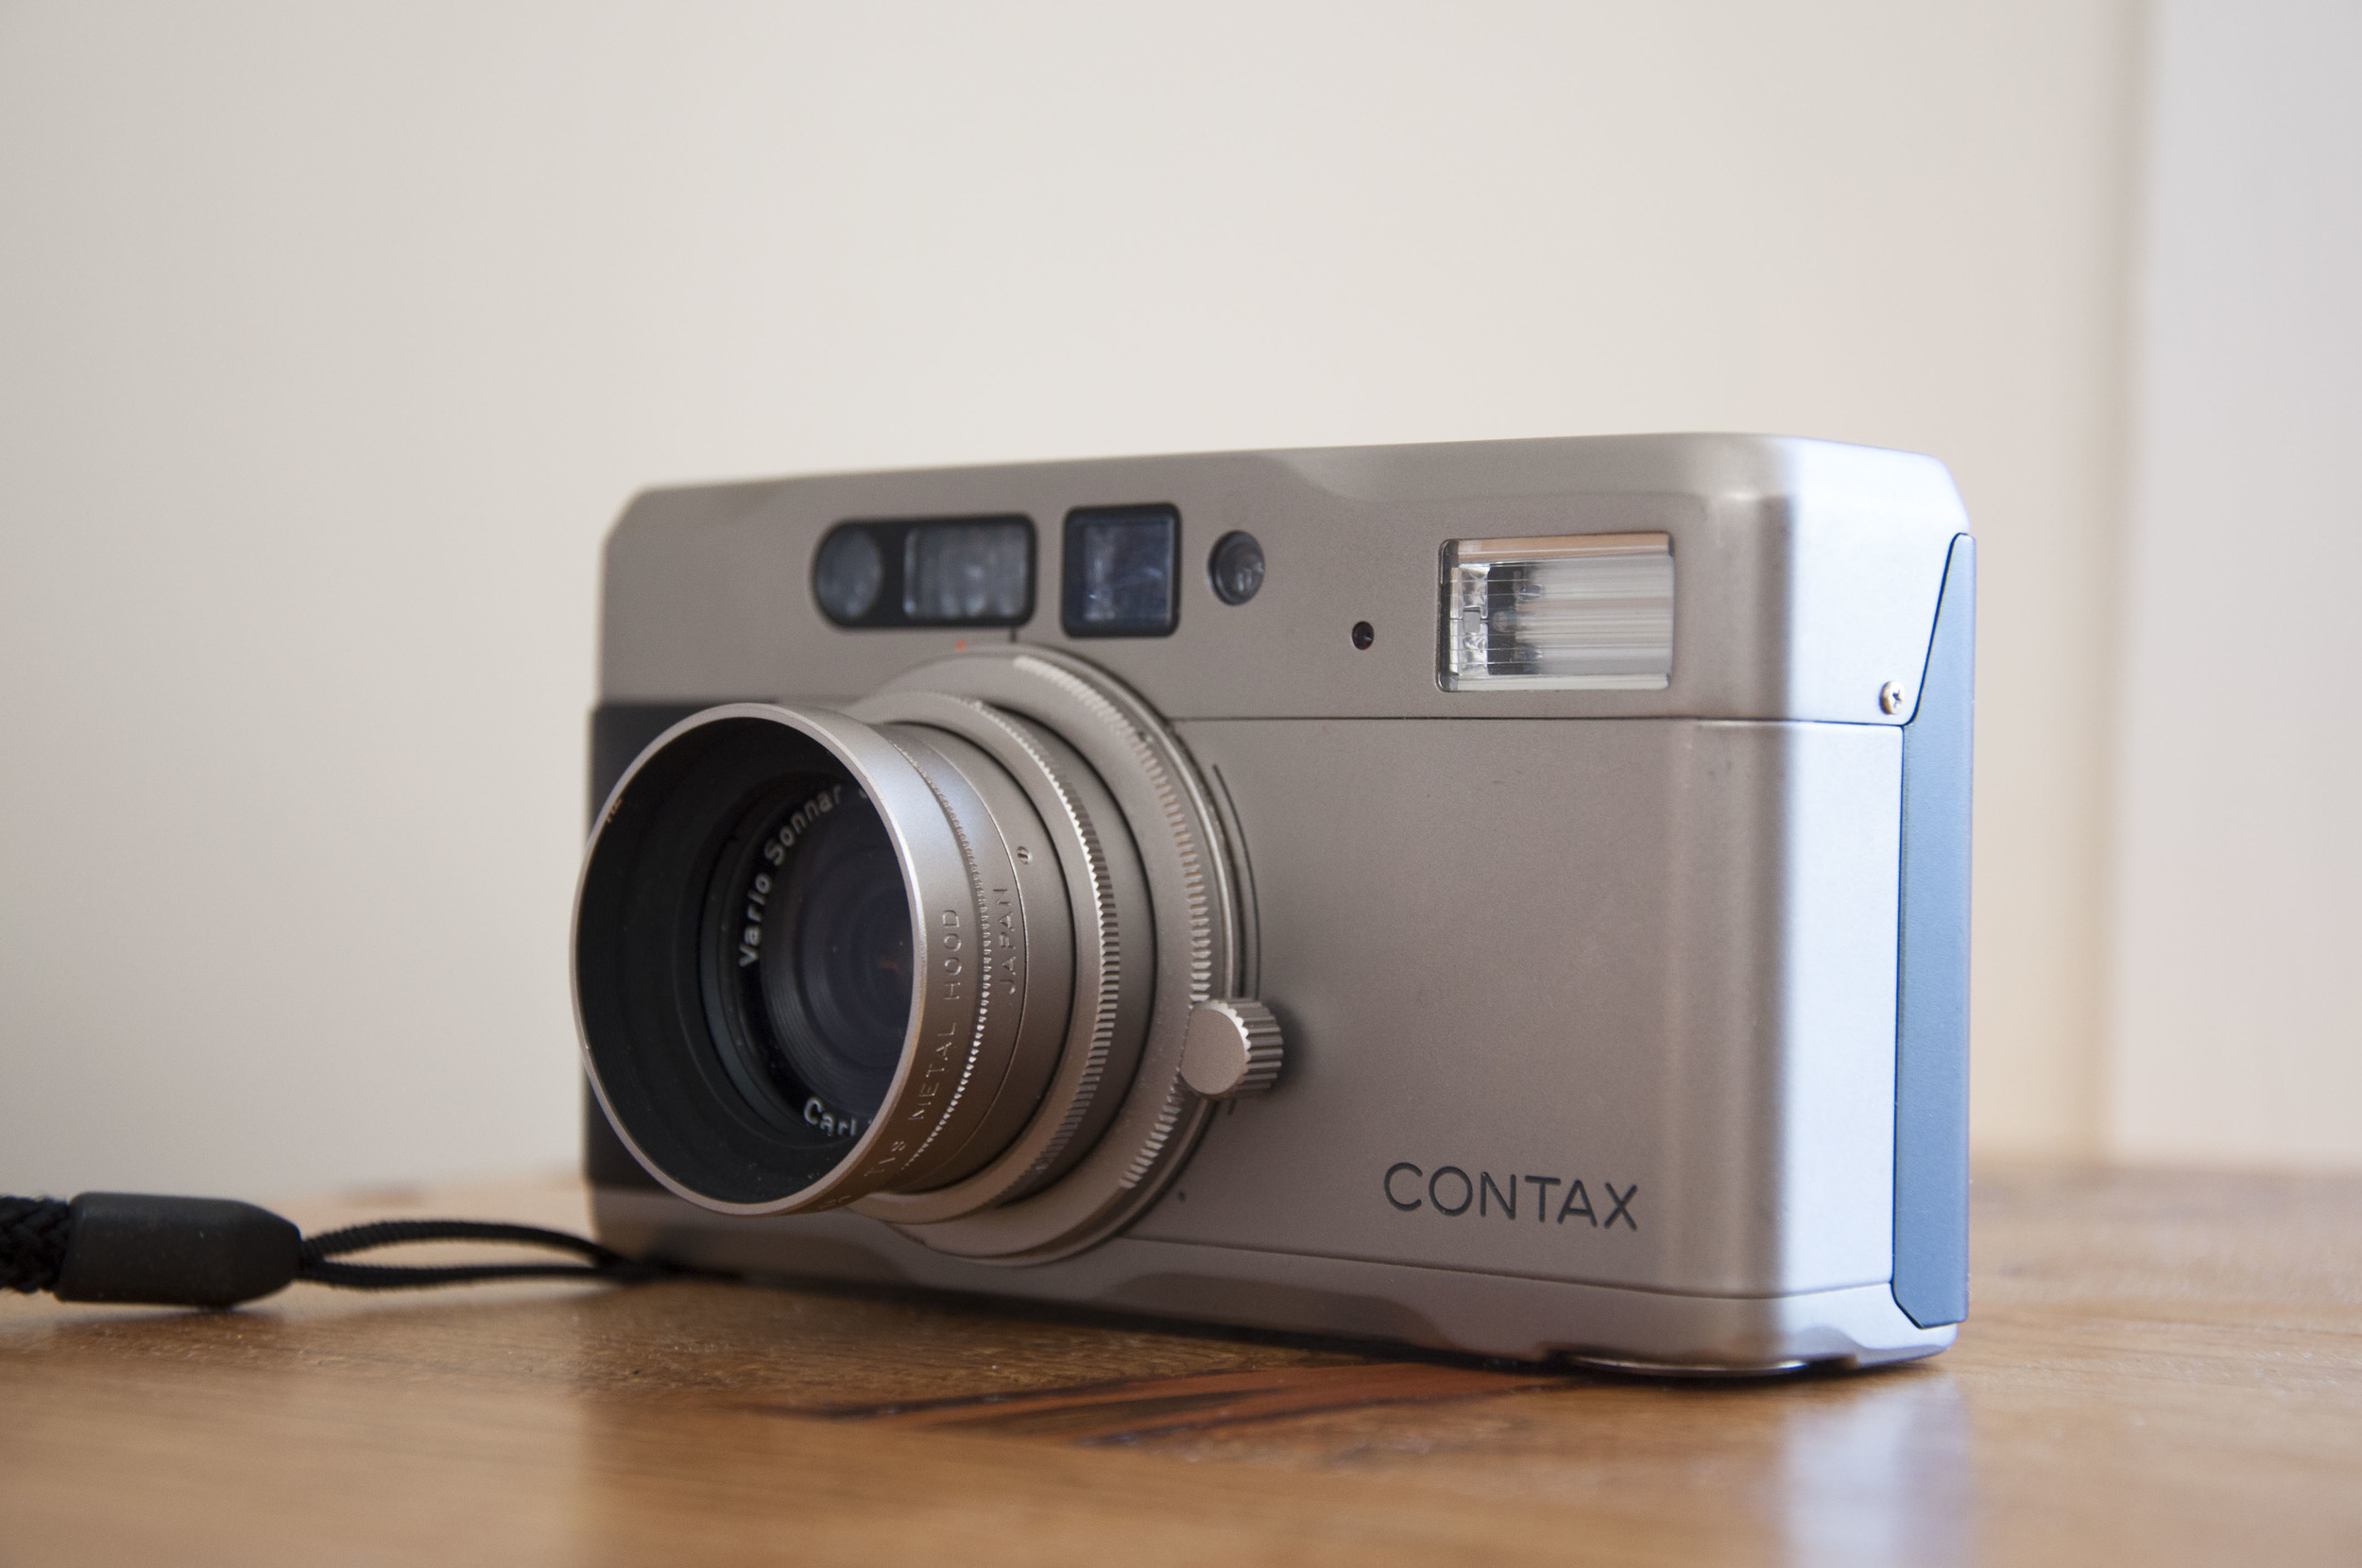 You can see that Drive Knob that is across from the Contax logo to the left